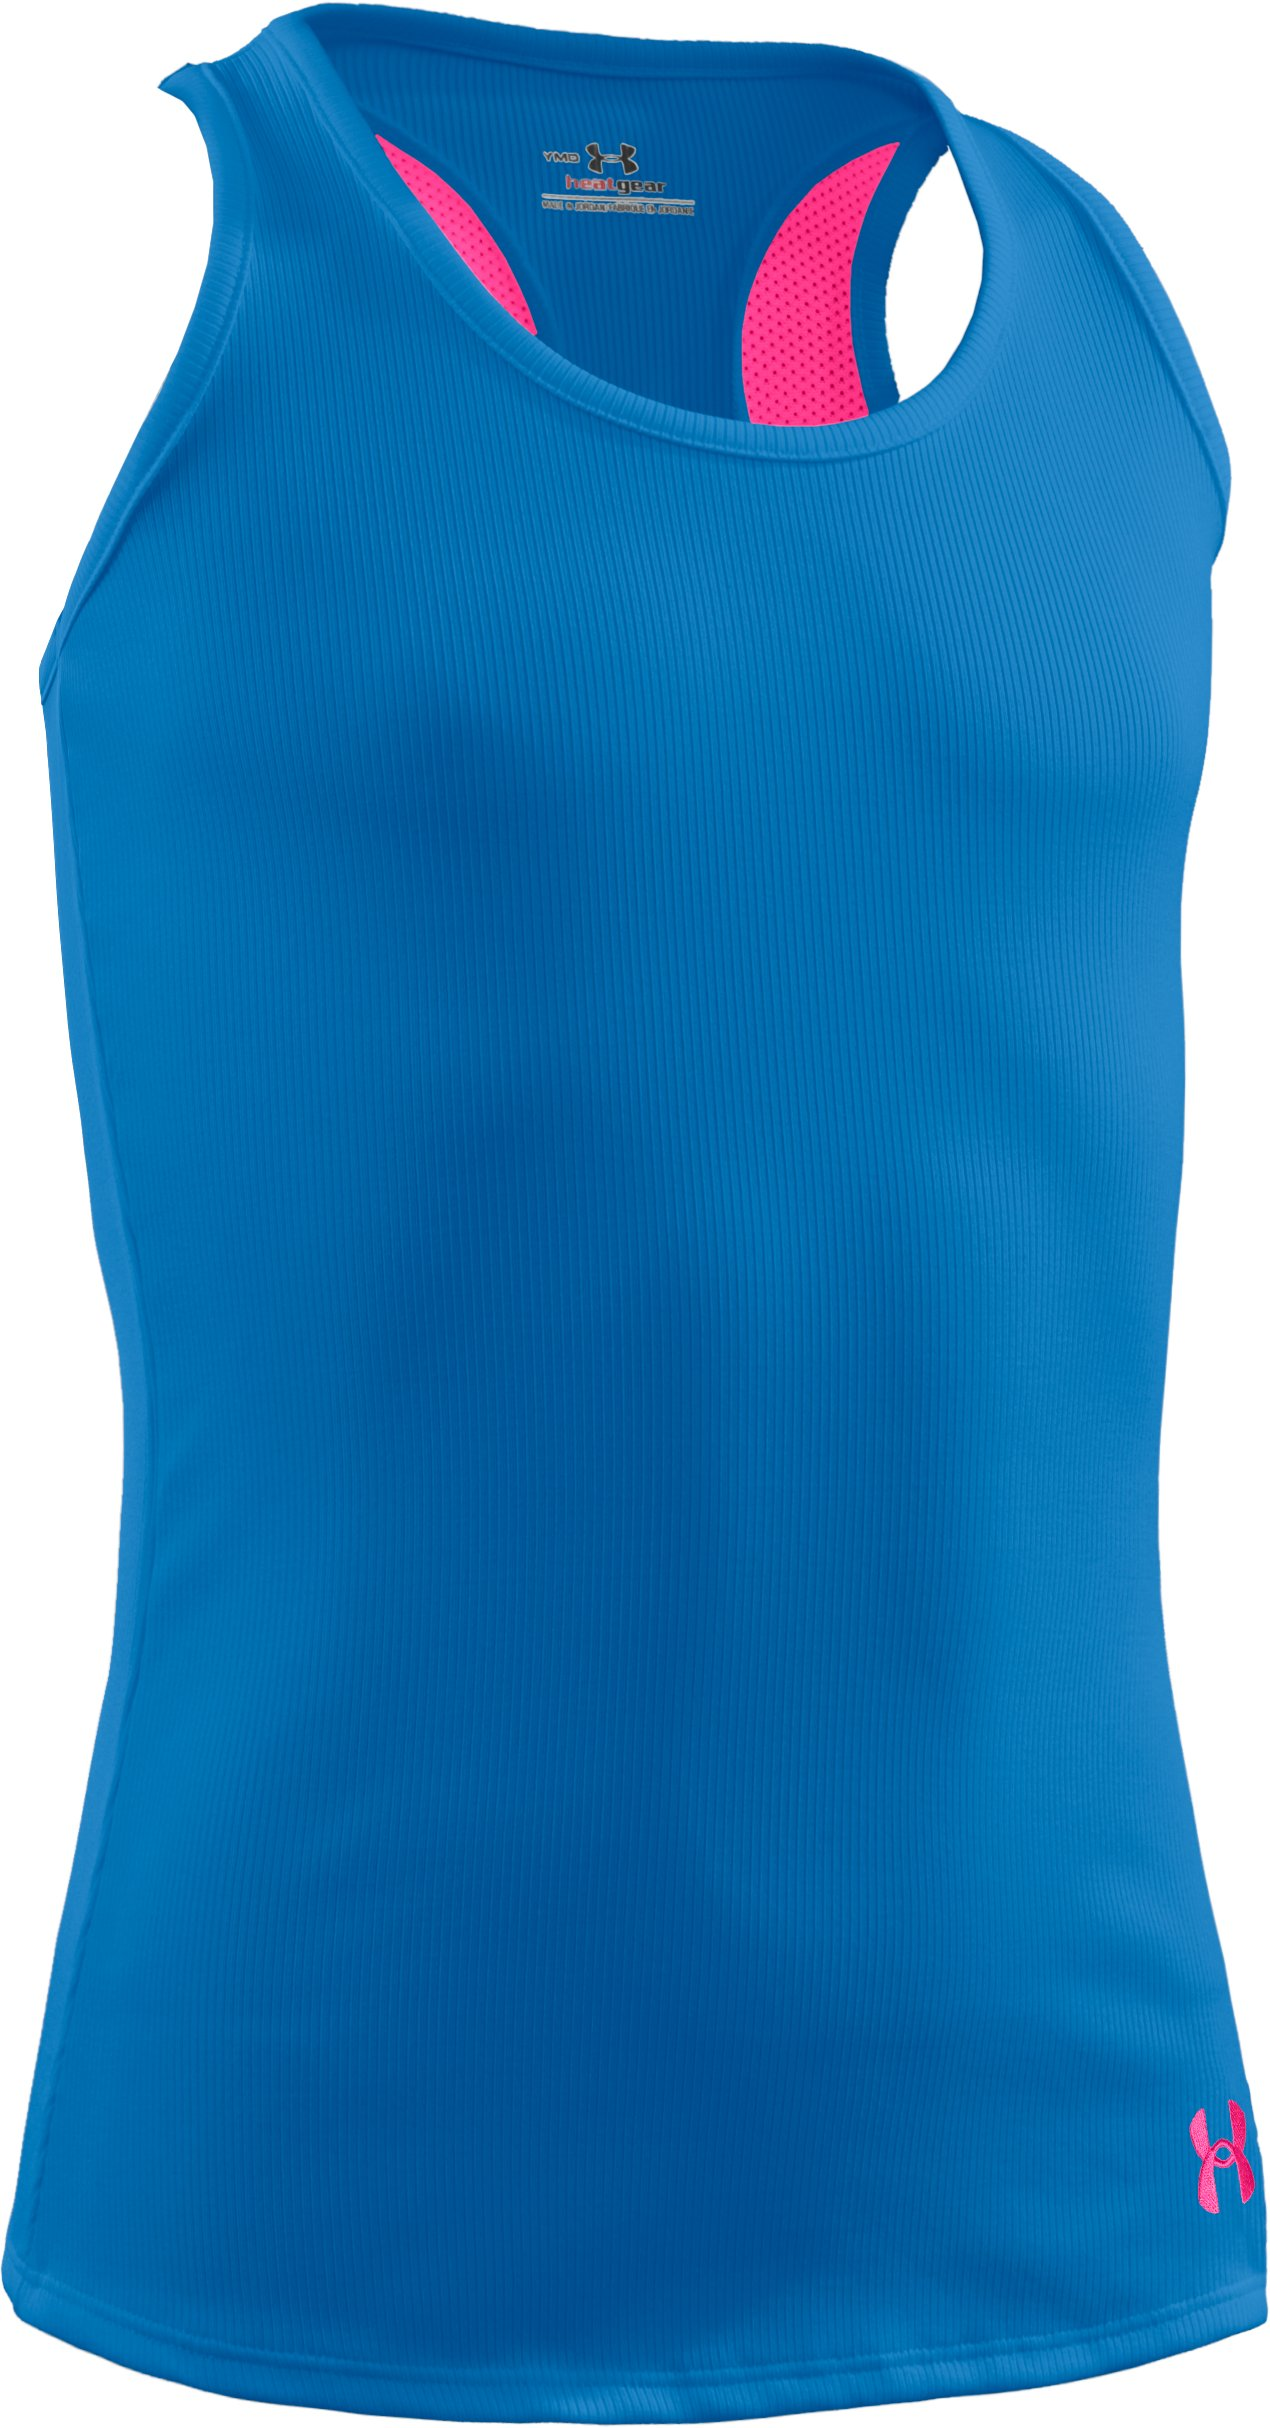 Girls' Victory Tank Top, Pool, zoomed image